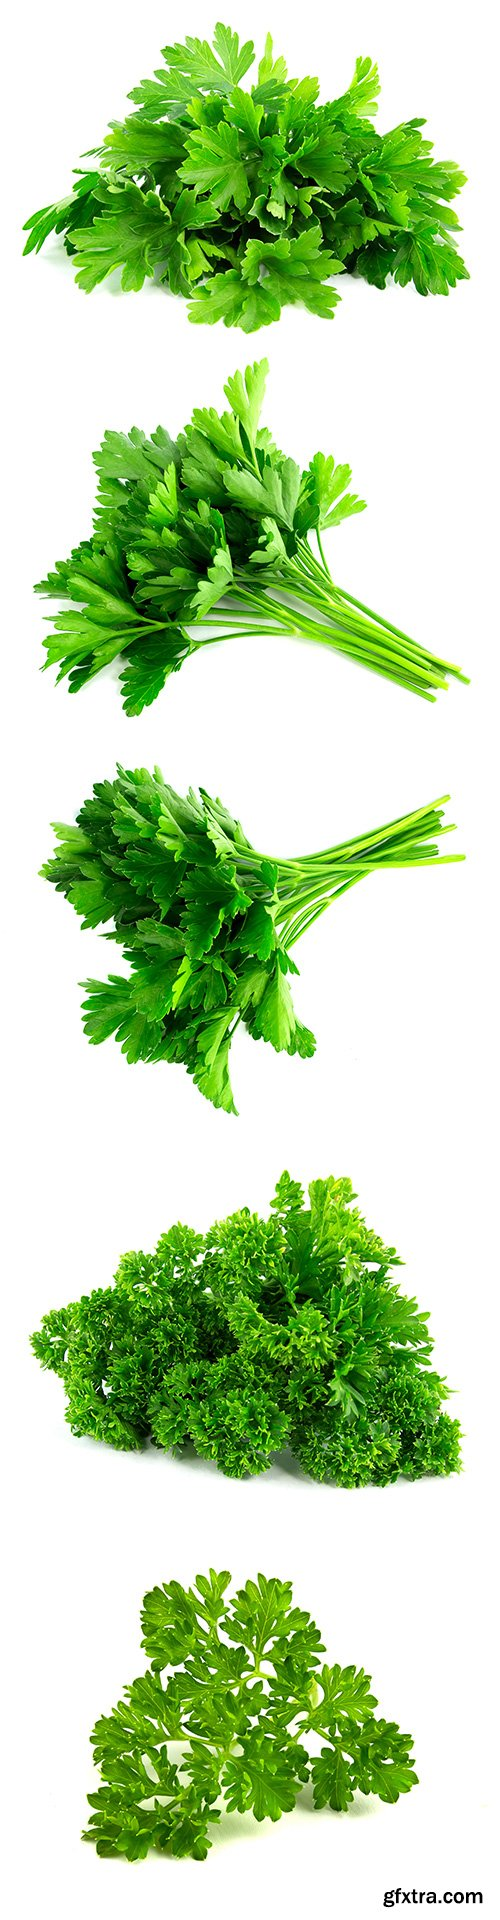 Parsley Isolated - 8xJPGs